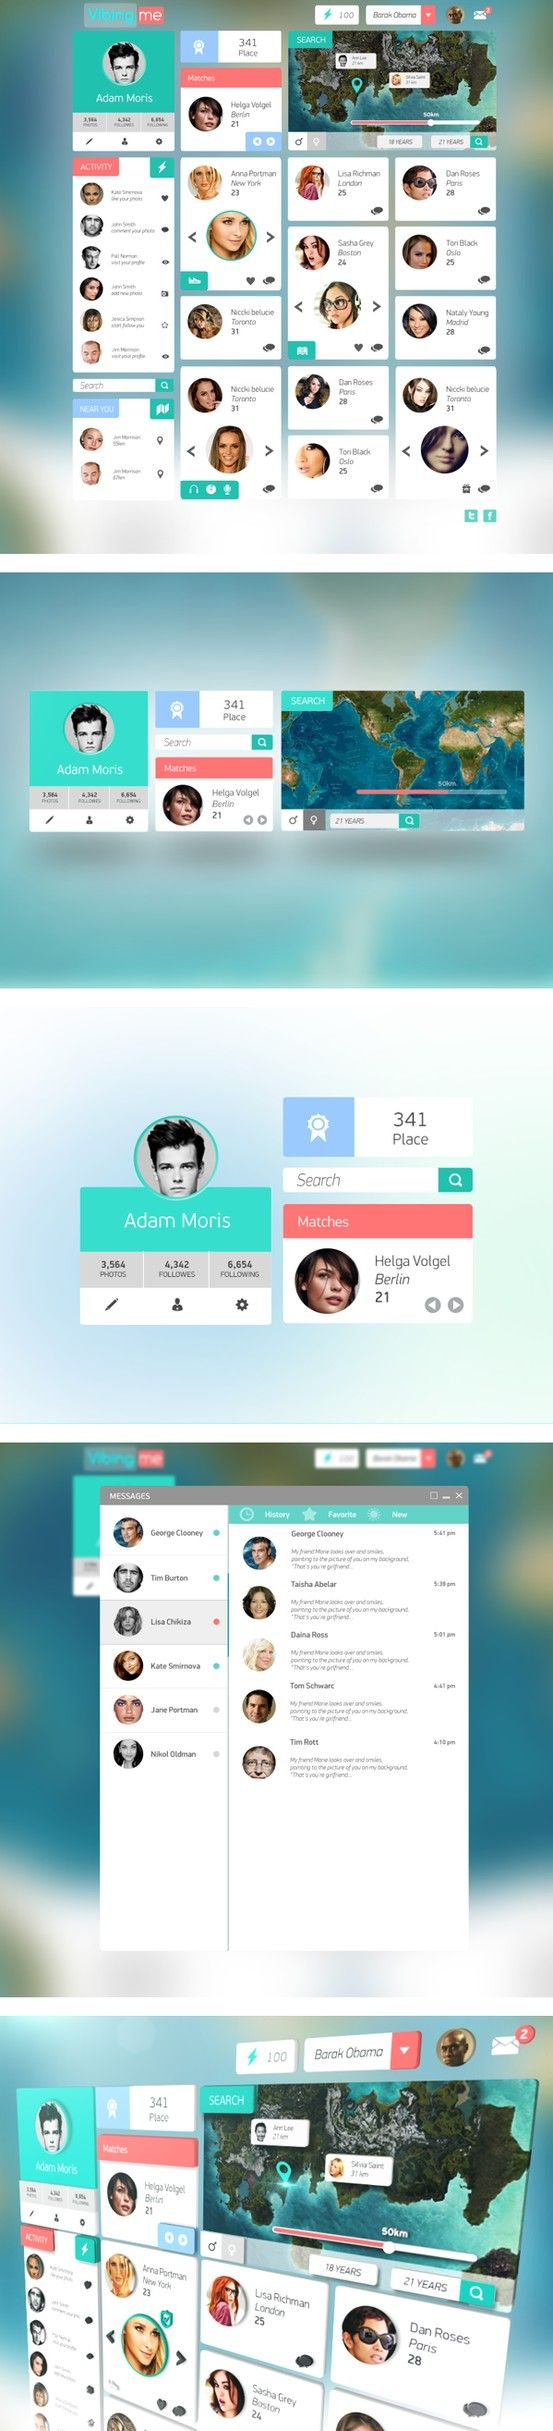 Dating platform concept by start uper, via Behance *** #web #ui #ux #behance #flatui